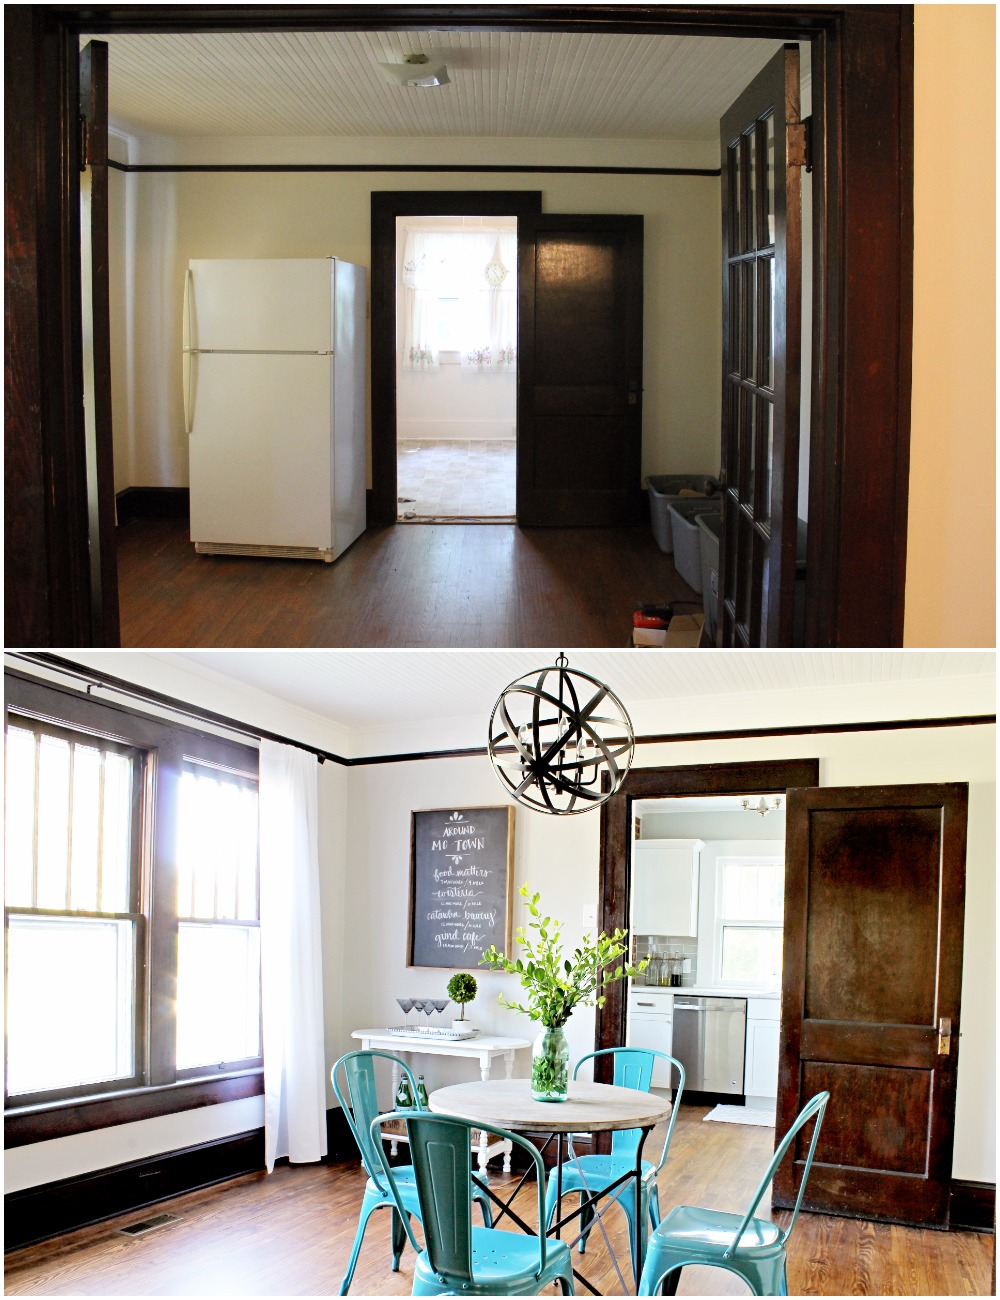 House Flipping Before and Afters - Dining Room Budget Renovation Remodel, Wood Trim Paint Colors - Sherwin Williams Repose Gray (3).jpg